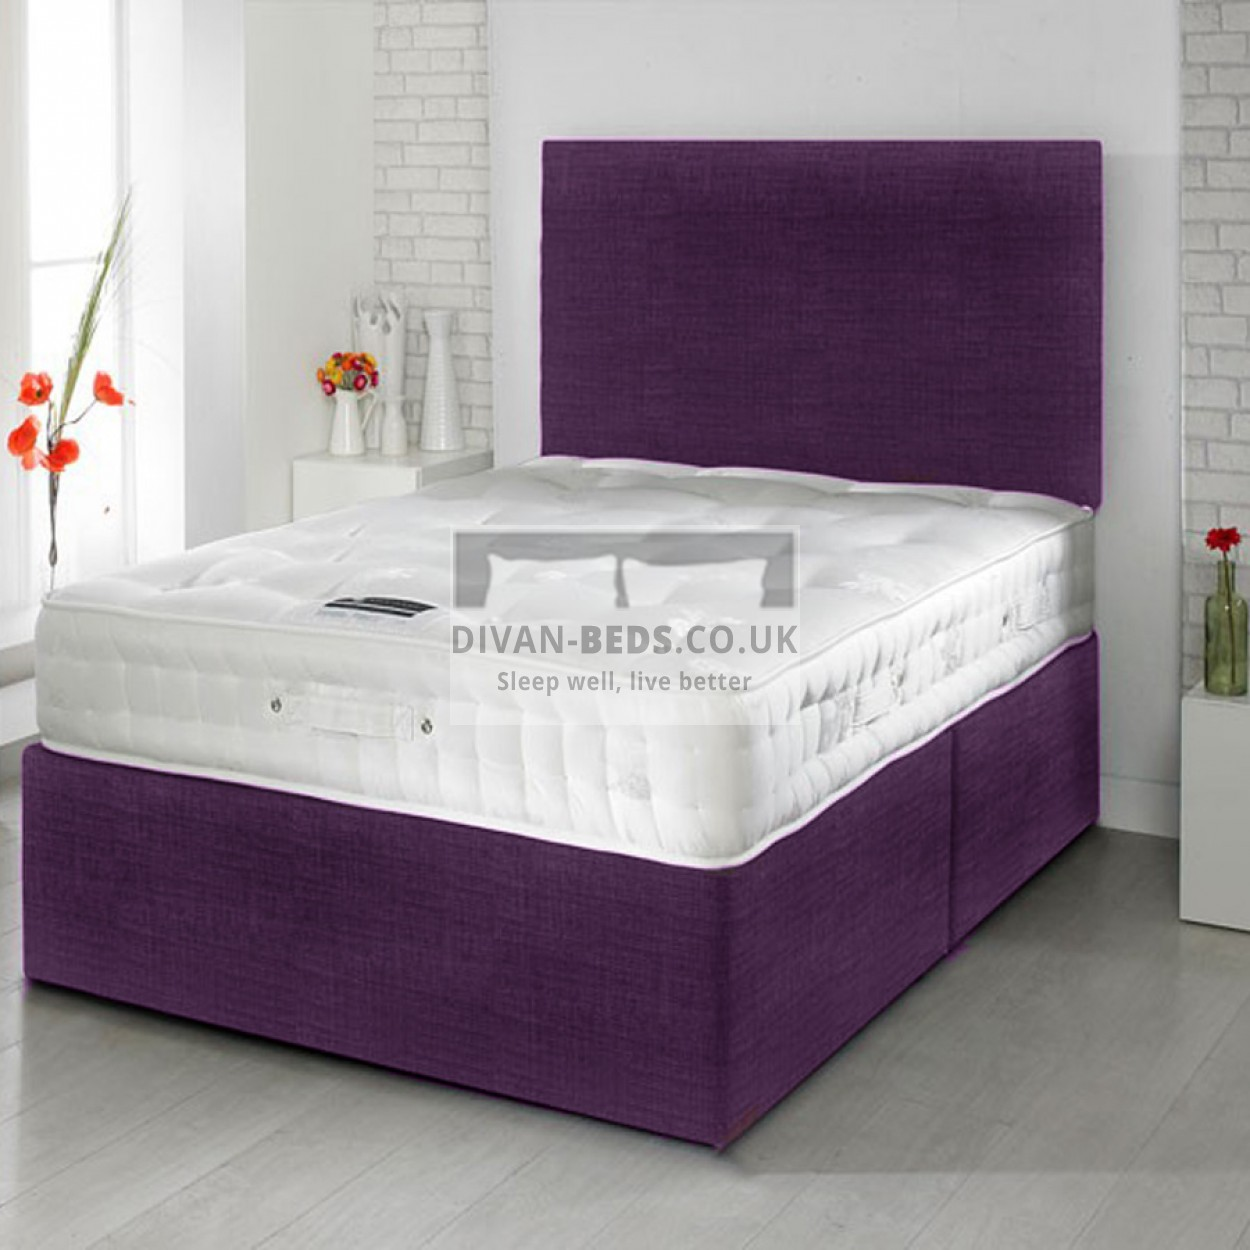 Robin Divan Bed With Spring Memory Foam Mattress Guaranteed Cheapest Free Fast Delivery